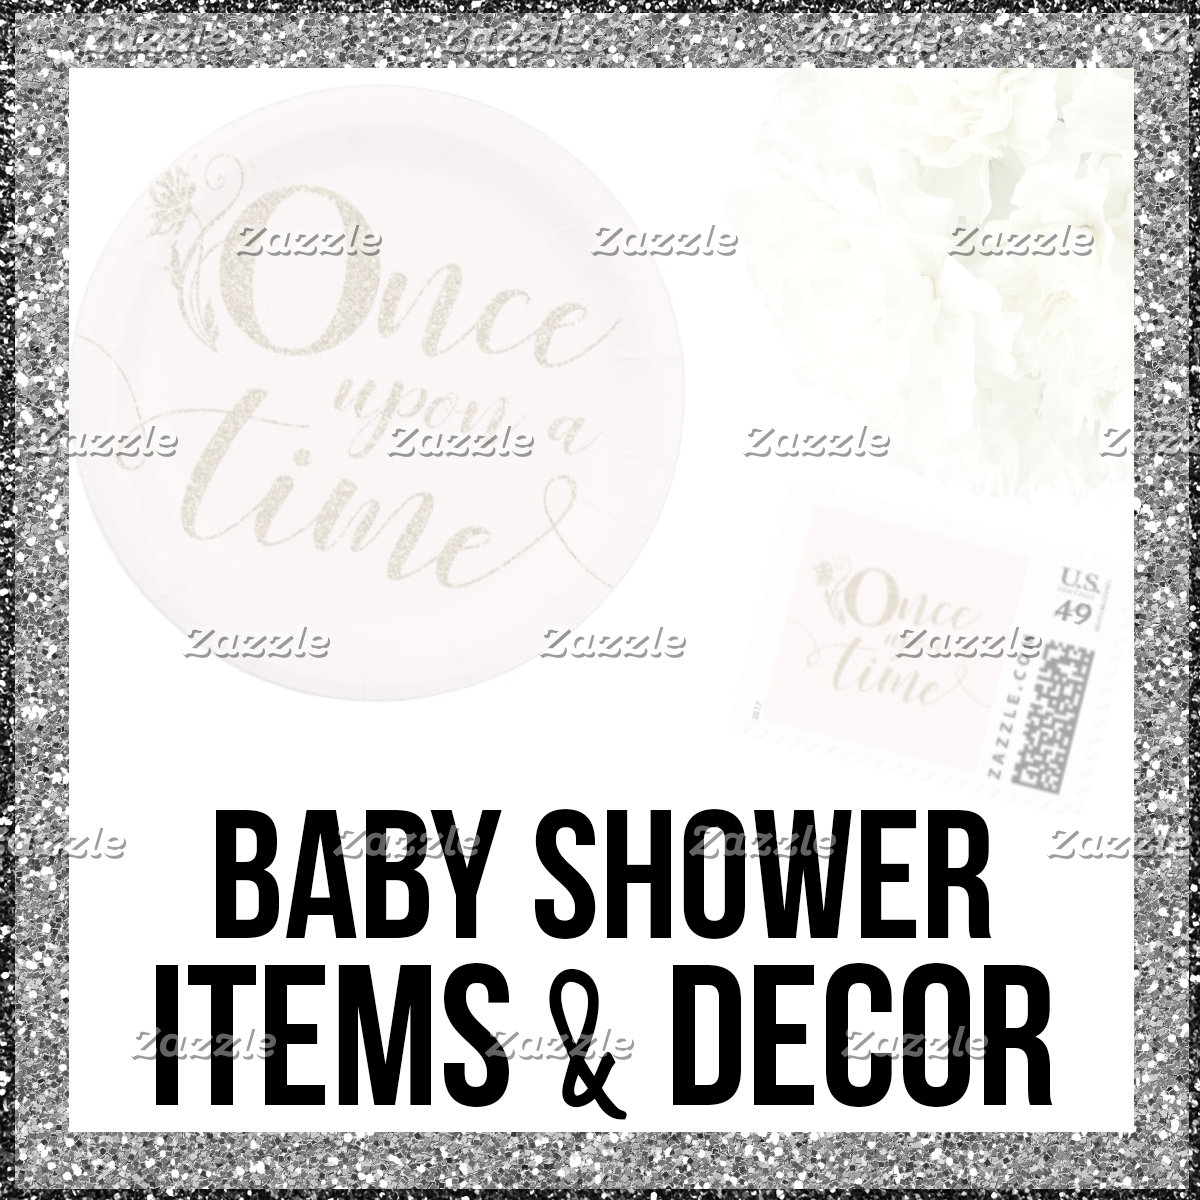 Baby Shower Items & Decor